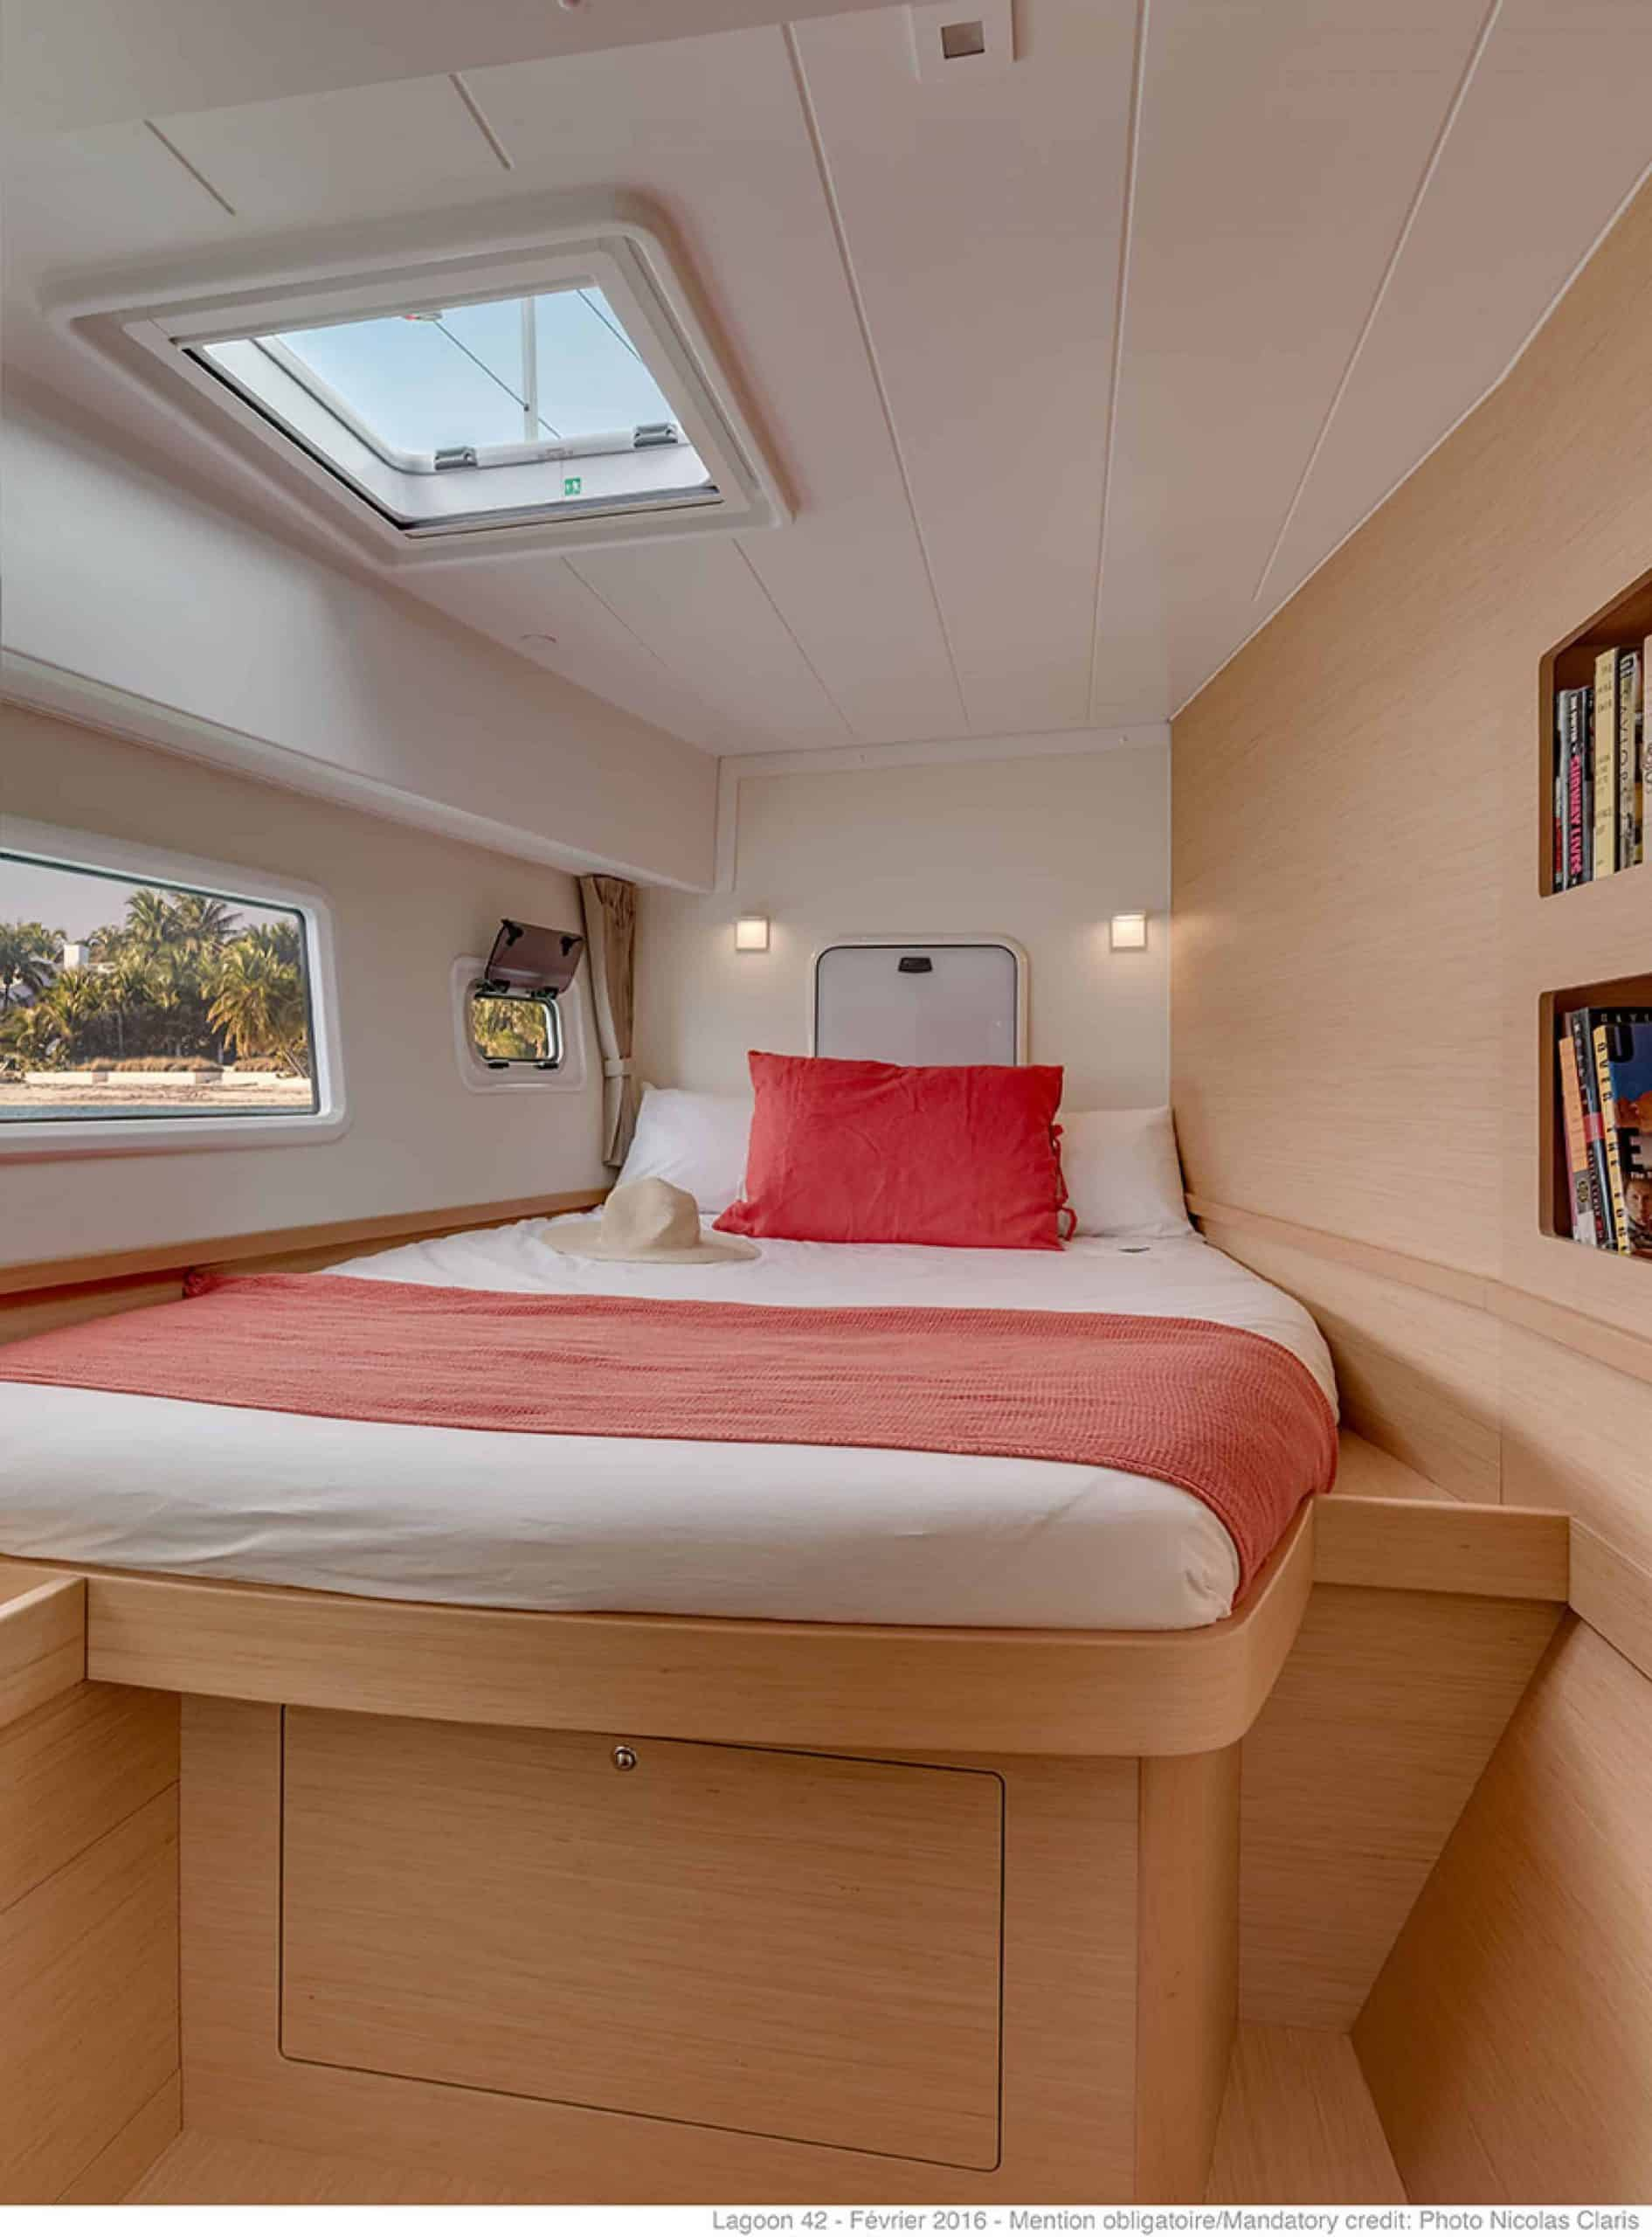 Relaxing cabin with double bed in the lagoon 42